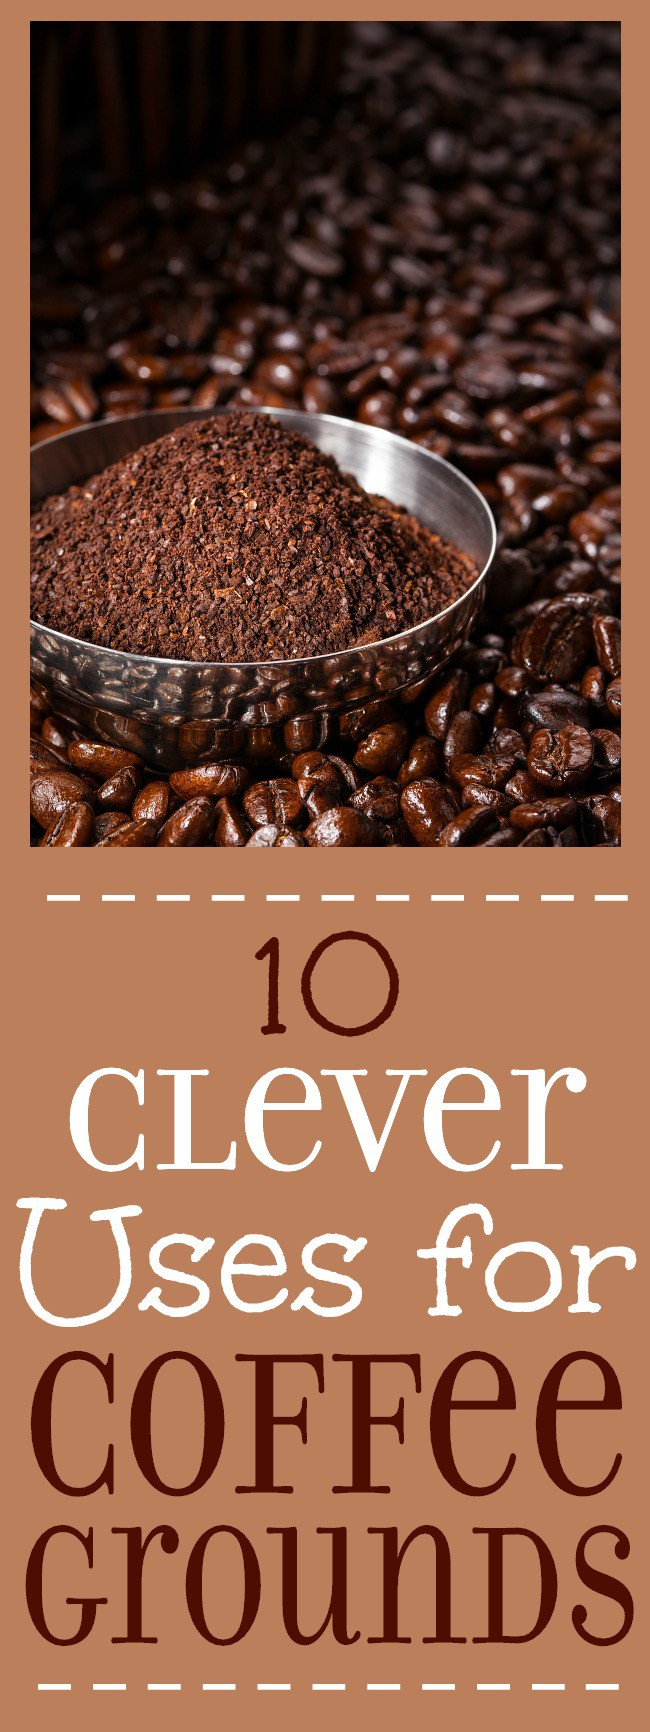 10 Clever Uses for Coffee Grounds -Don't throw away your coffee grounds! You can use them again with these 10 ingenious uses for coffee grounds around the house!